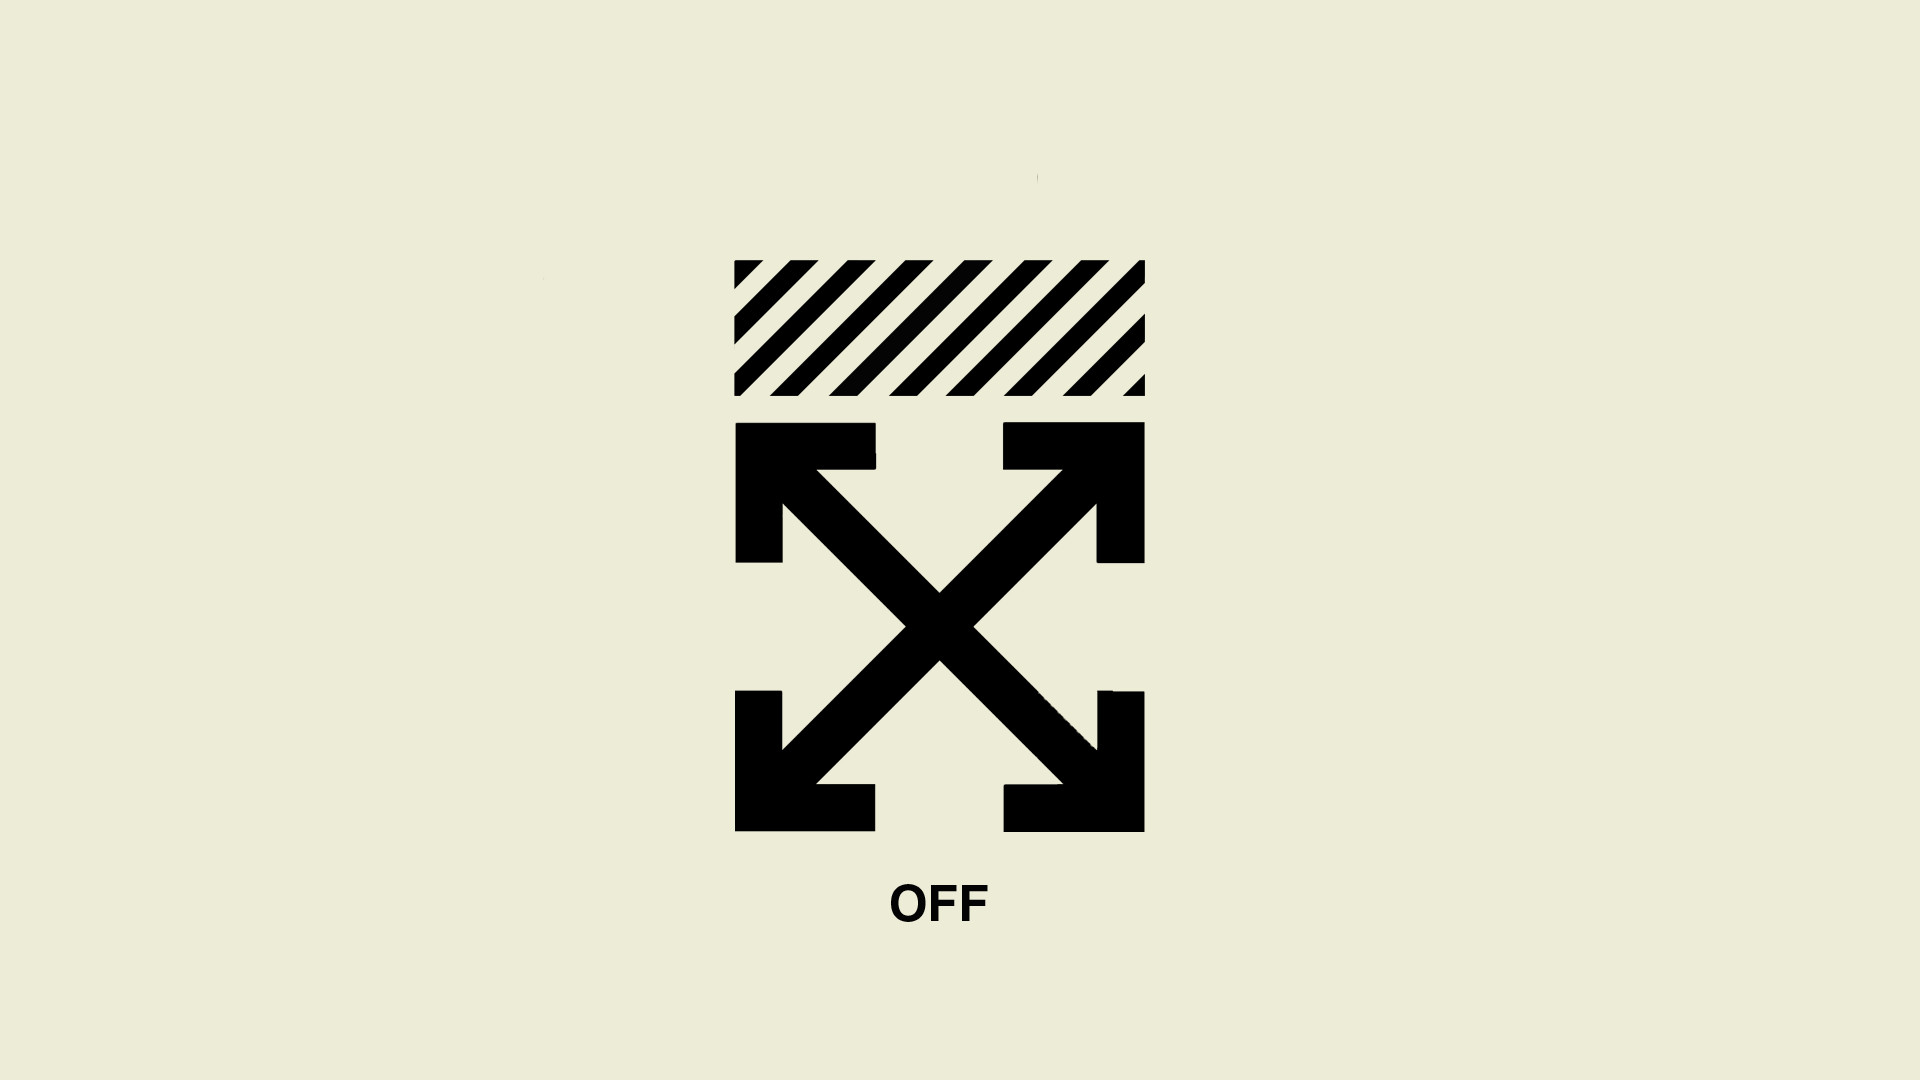 An Album Of A Bunch Of Off White Desktop Wallpapers Off White 28080 Hd Wallpaper Backgrounds Download